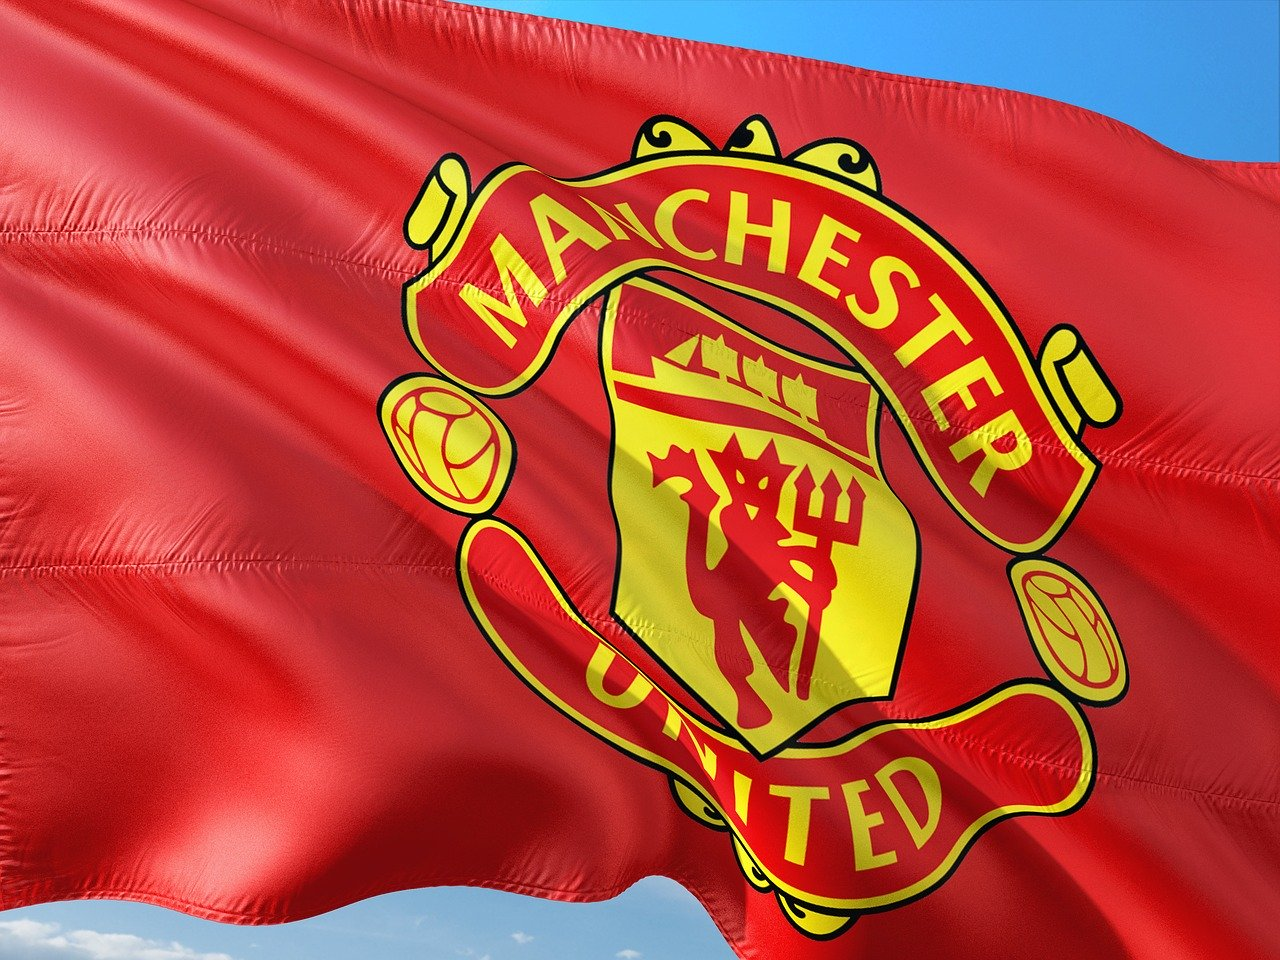 Manchester United F.C. (Football club)